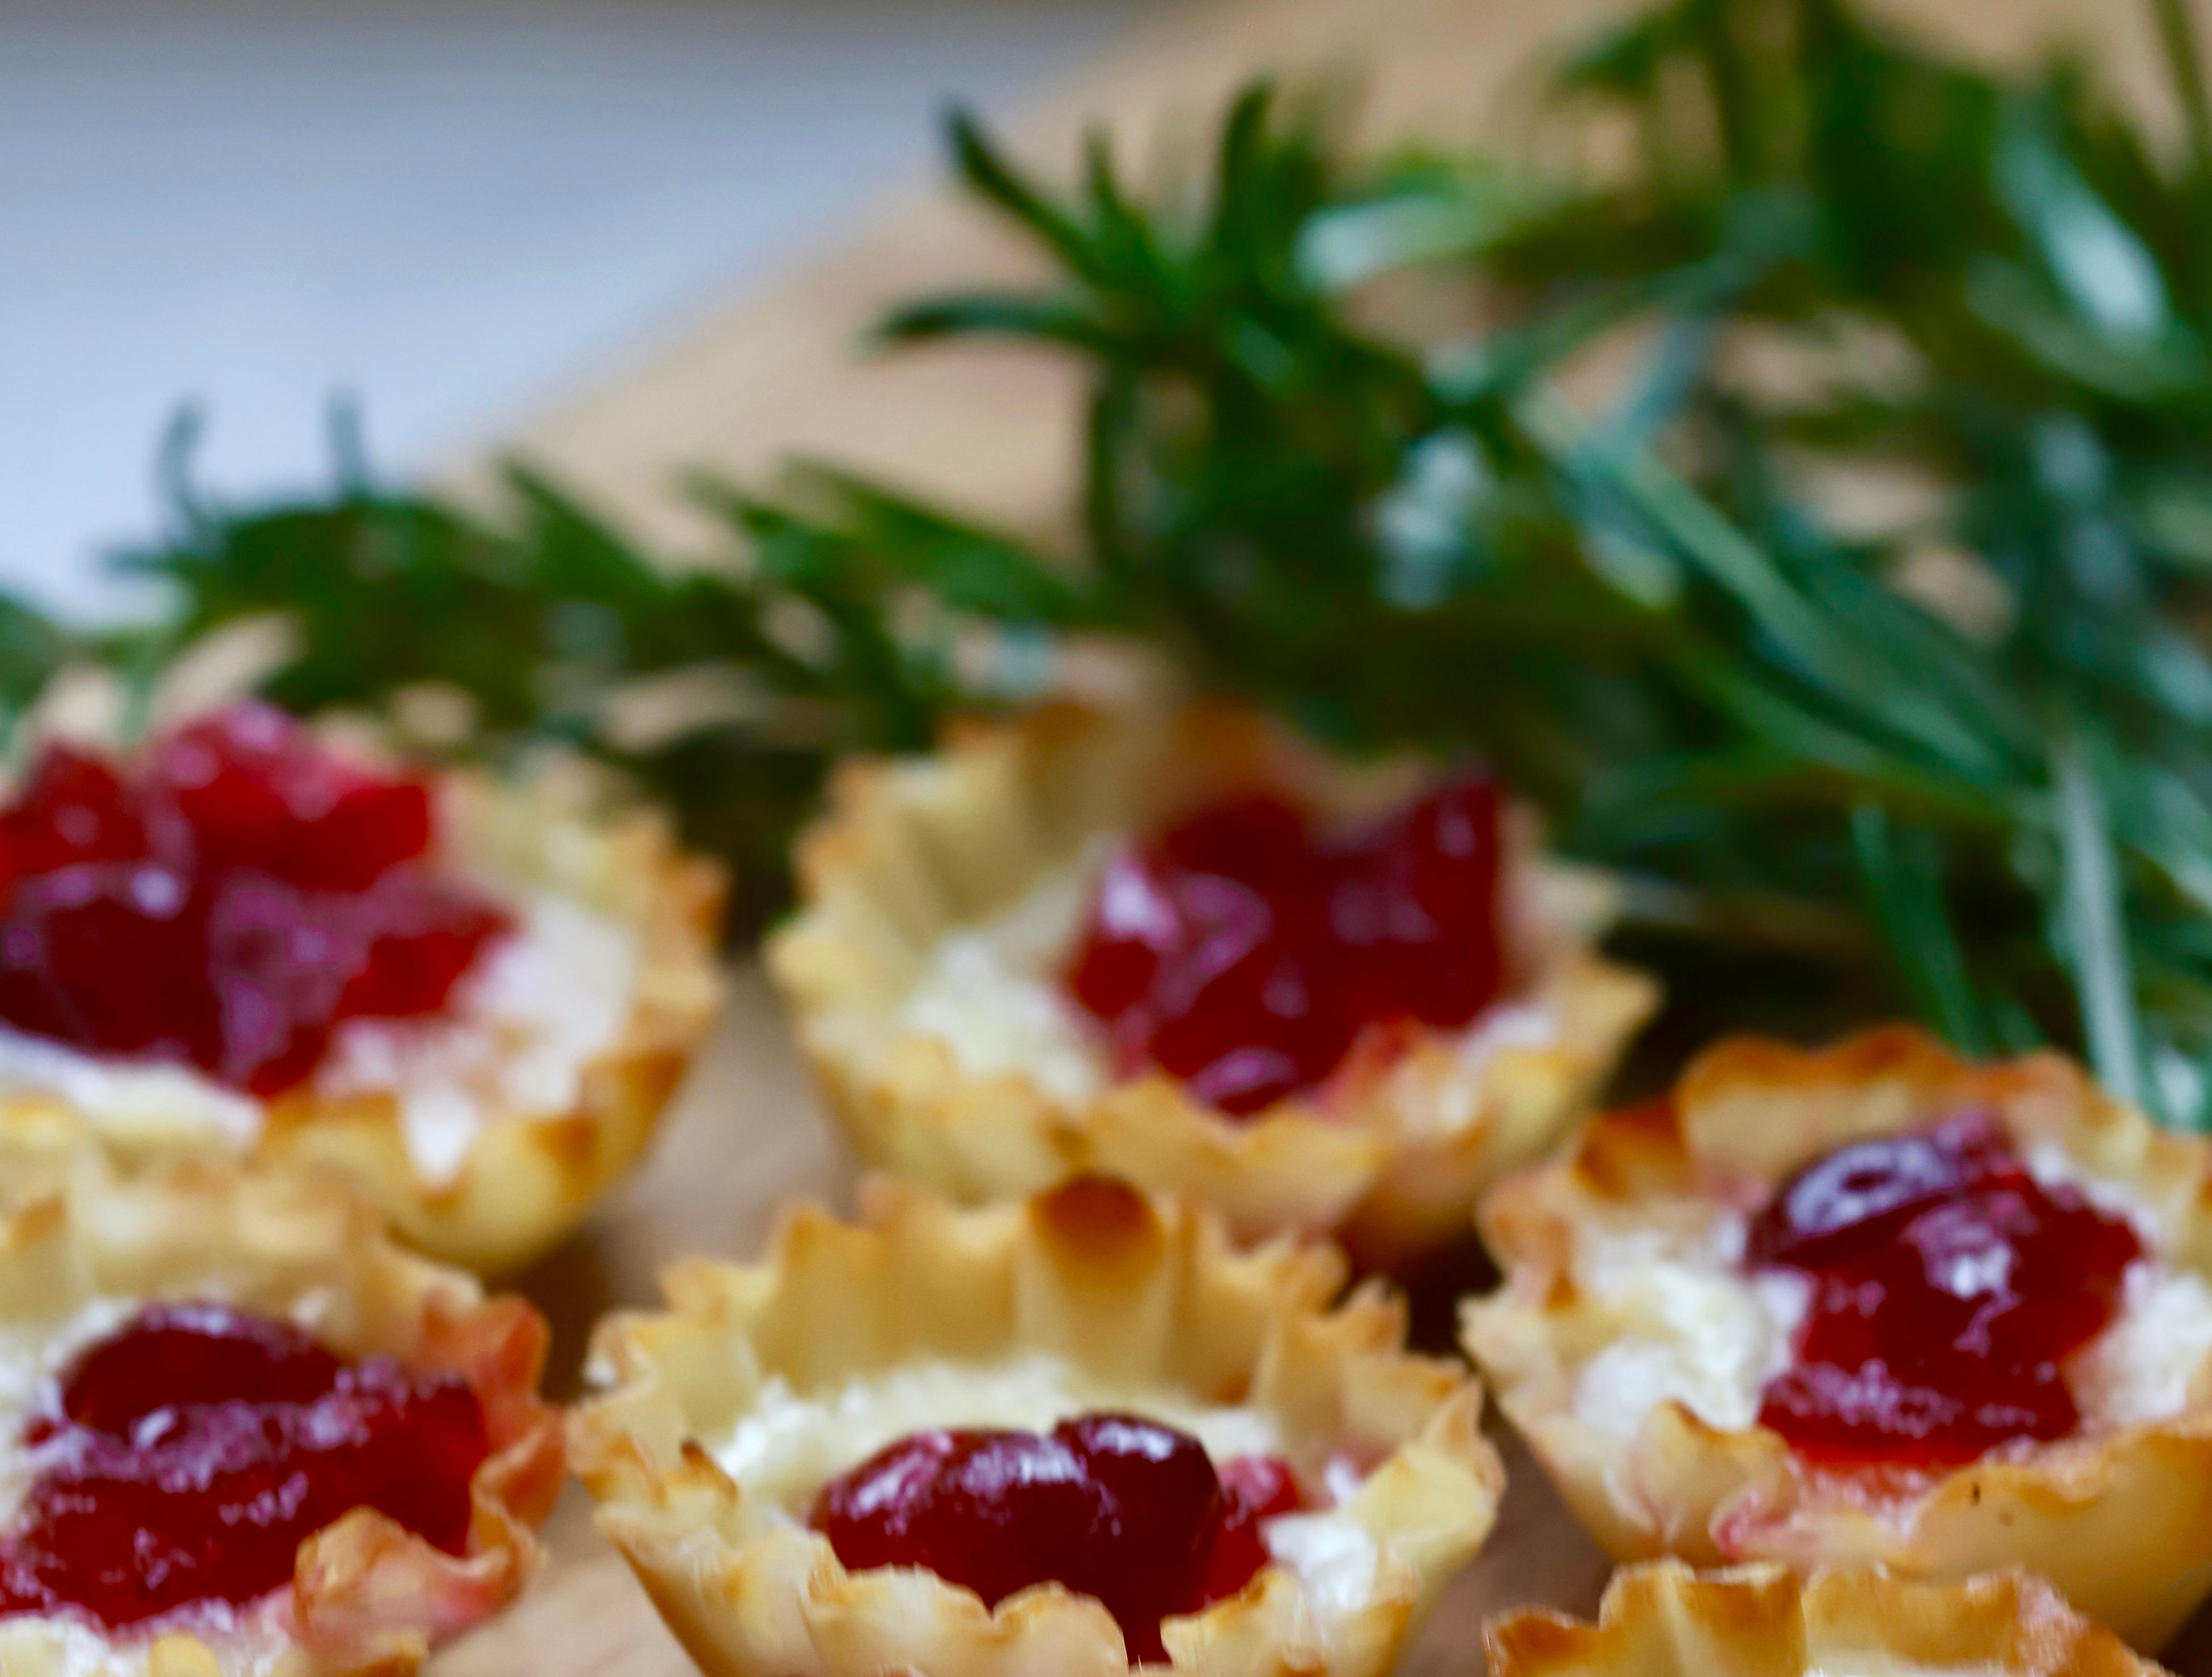 Be merry and bright with festive Cranberry Brie Bites